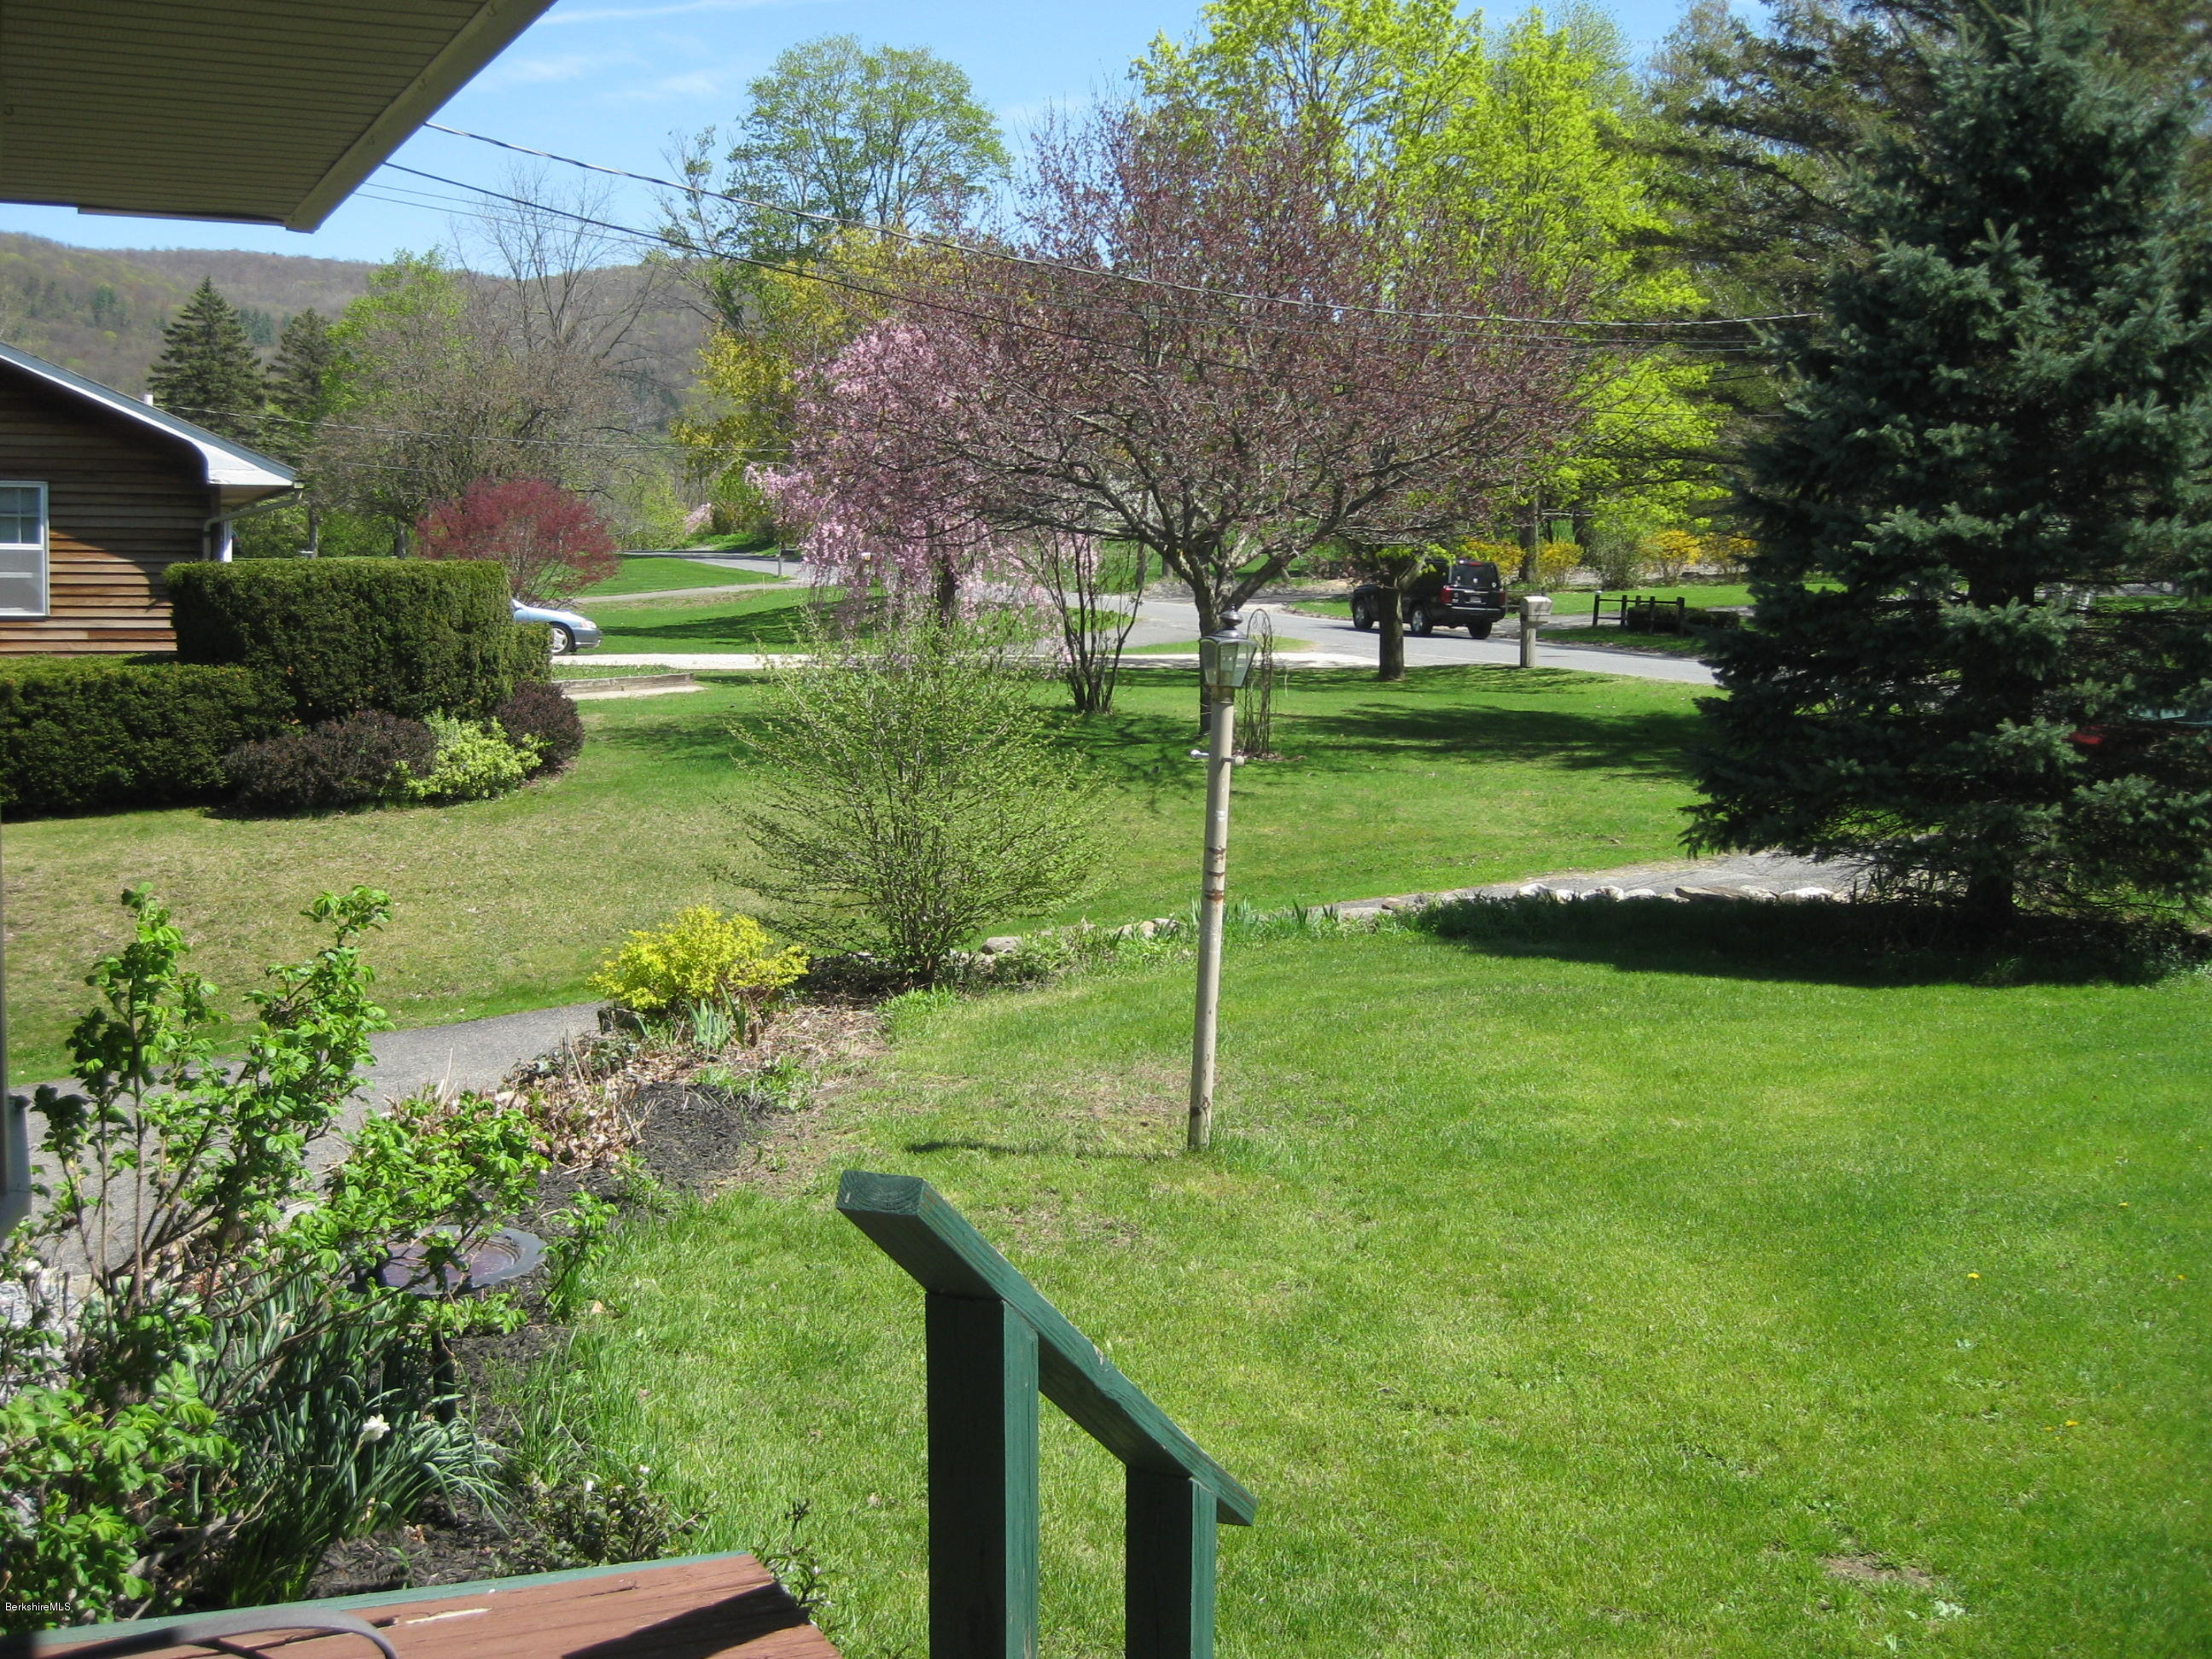 view 1 from front deck